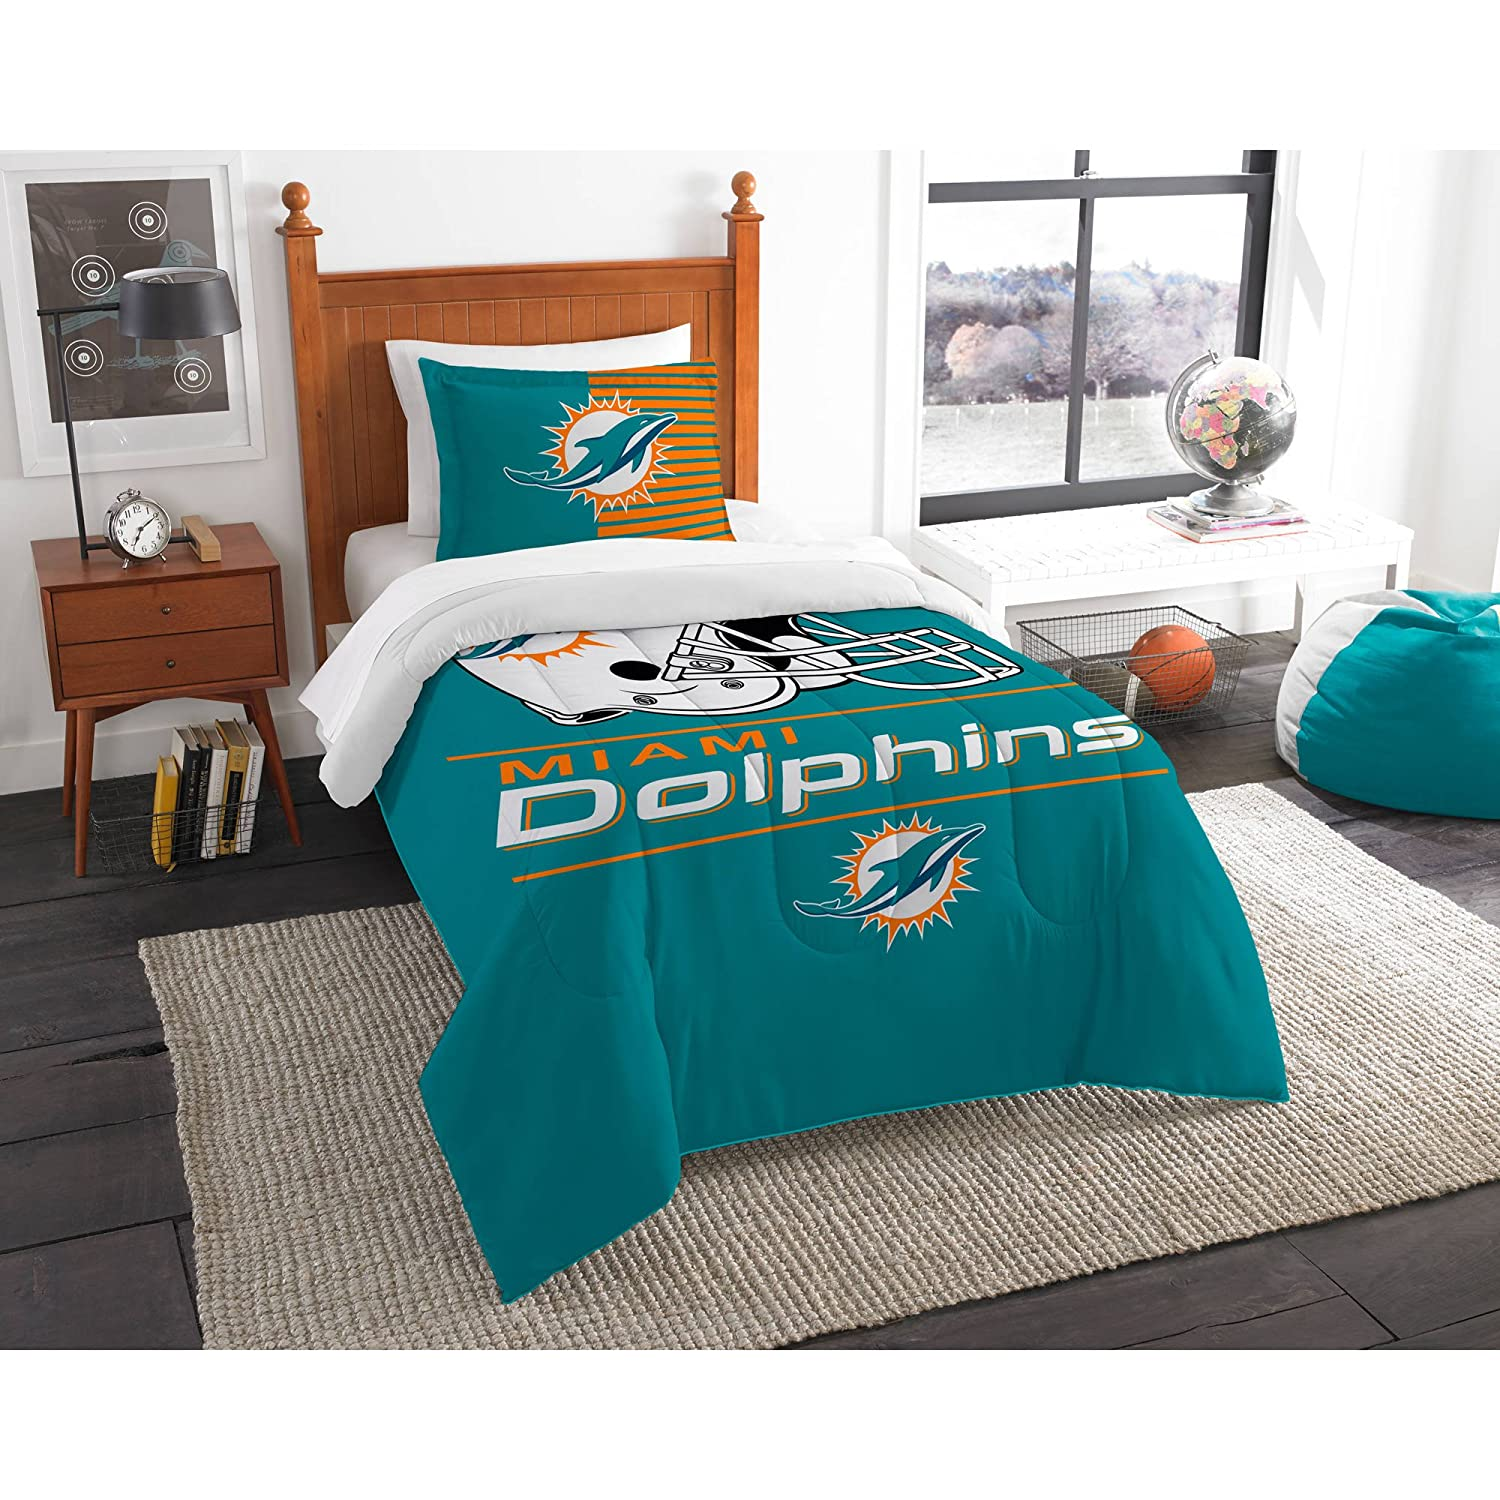 2 Piece NFL Dolphins Comforter Twin Set, Blue Orange Football Themed Bedding Sports Patterned, Team Logo Fan Merchandise Athletic Team Spirit Fan, Polyester, For Unisex